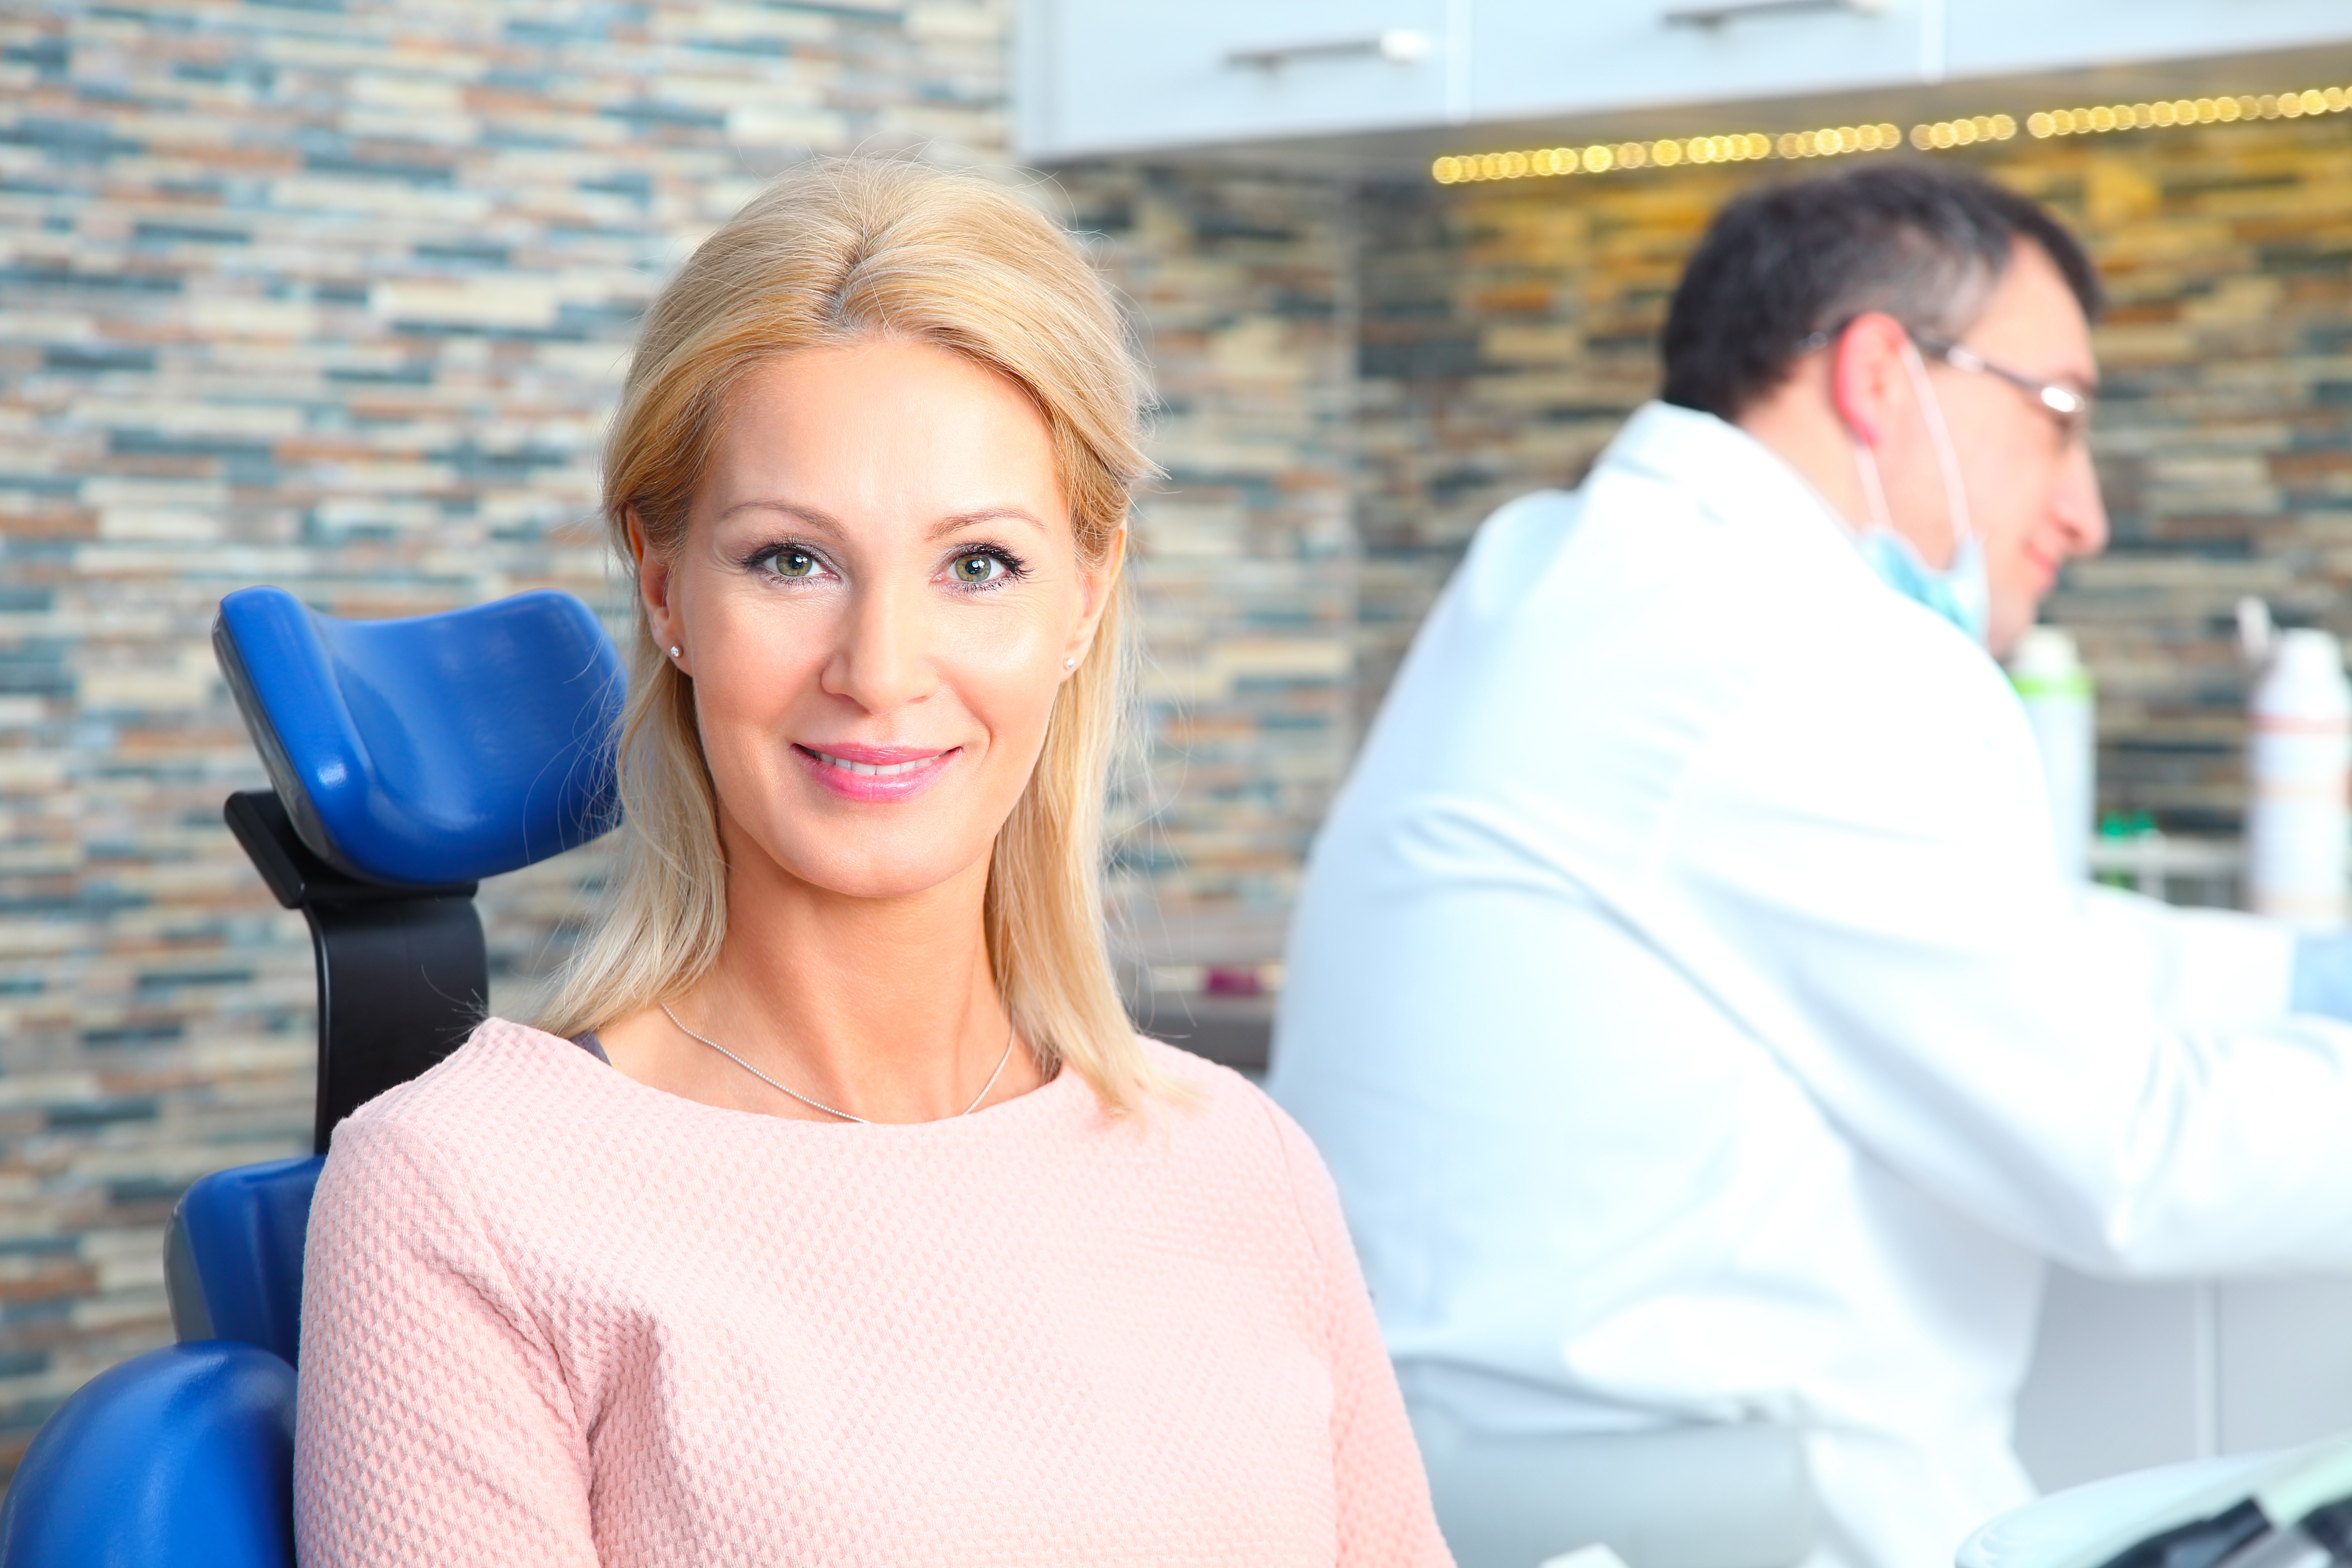 Where are the best dental implants orlando?